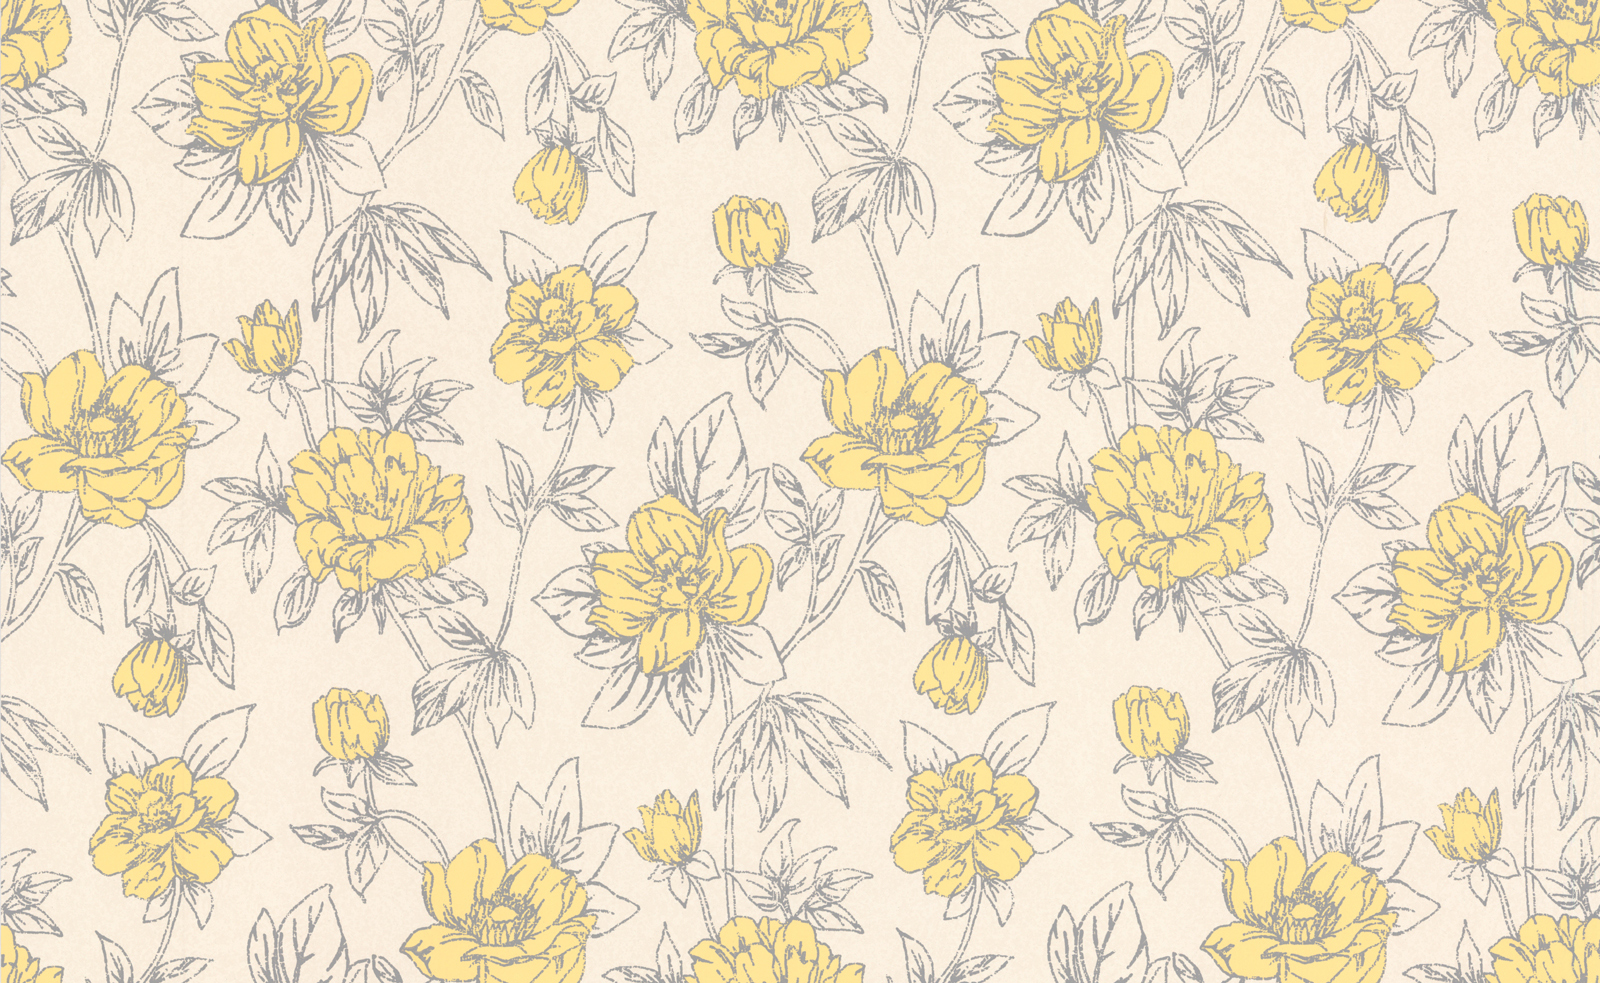 Free Download Vintage Yellow Floral Wallpaper Spring Yellow Wallpaper 1600x983 For Your Desktop Mobile Tablet Explore 43 Yellow Floral Wallpaper Yellow And Black Wallpaper Wallpaper Floral Design Yellow Flowered Wallpaper